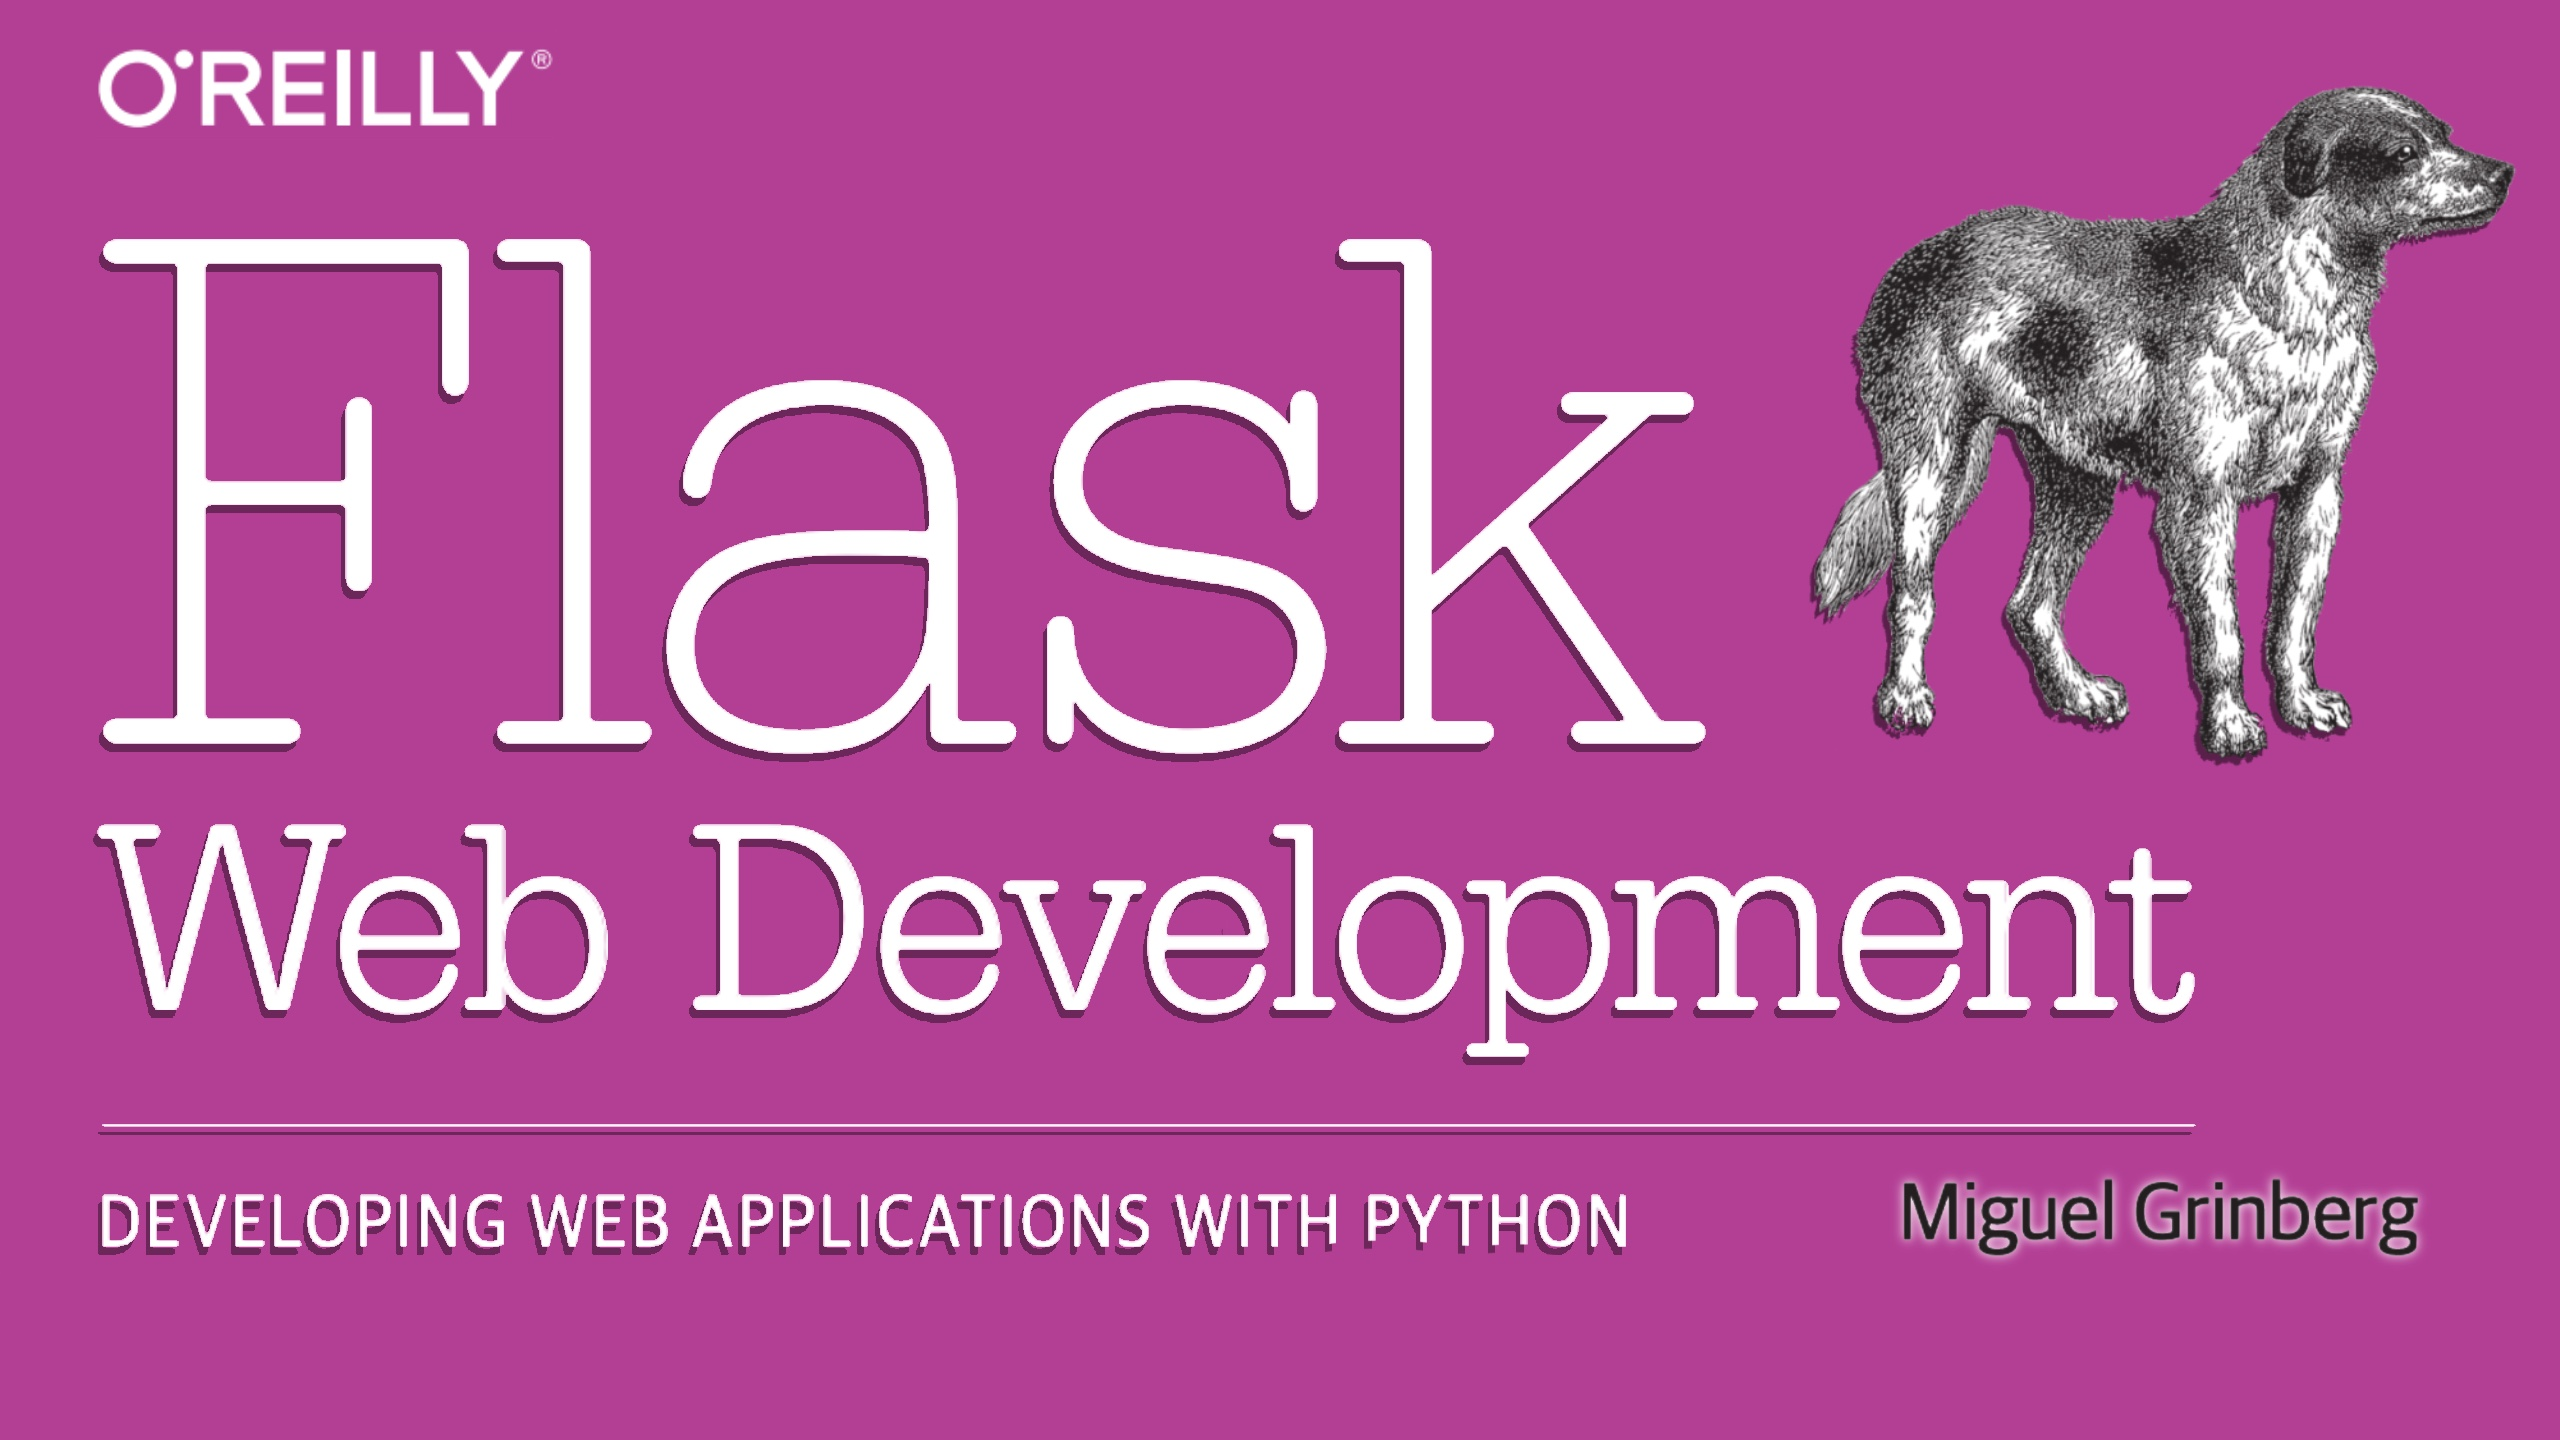 flask web development miguel grinberg oreilly